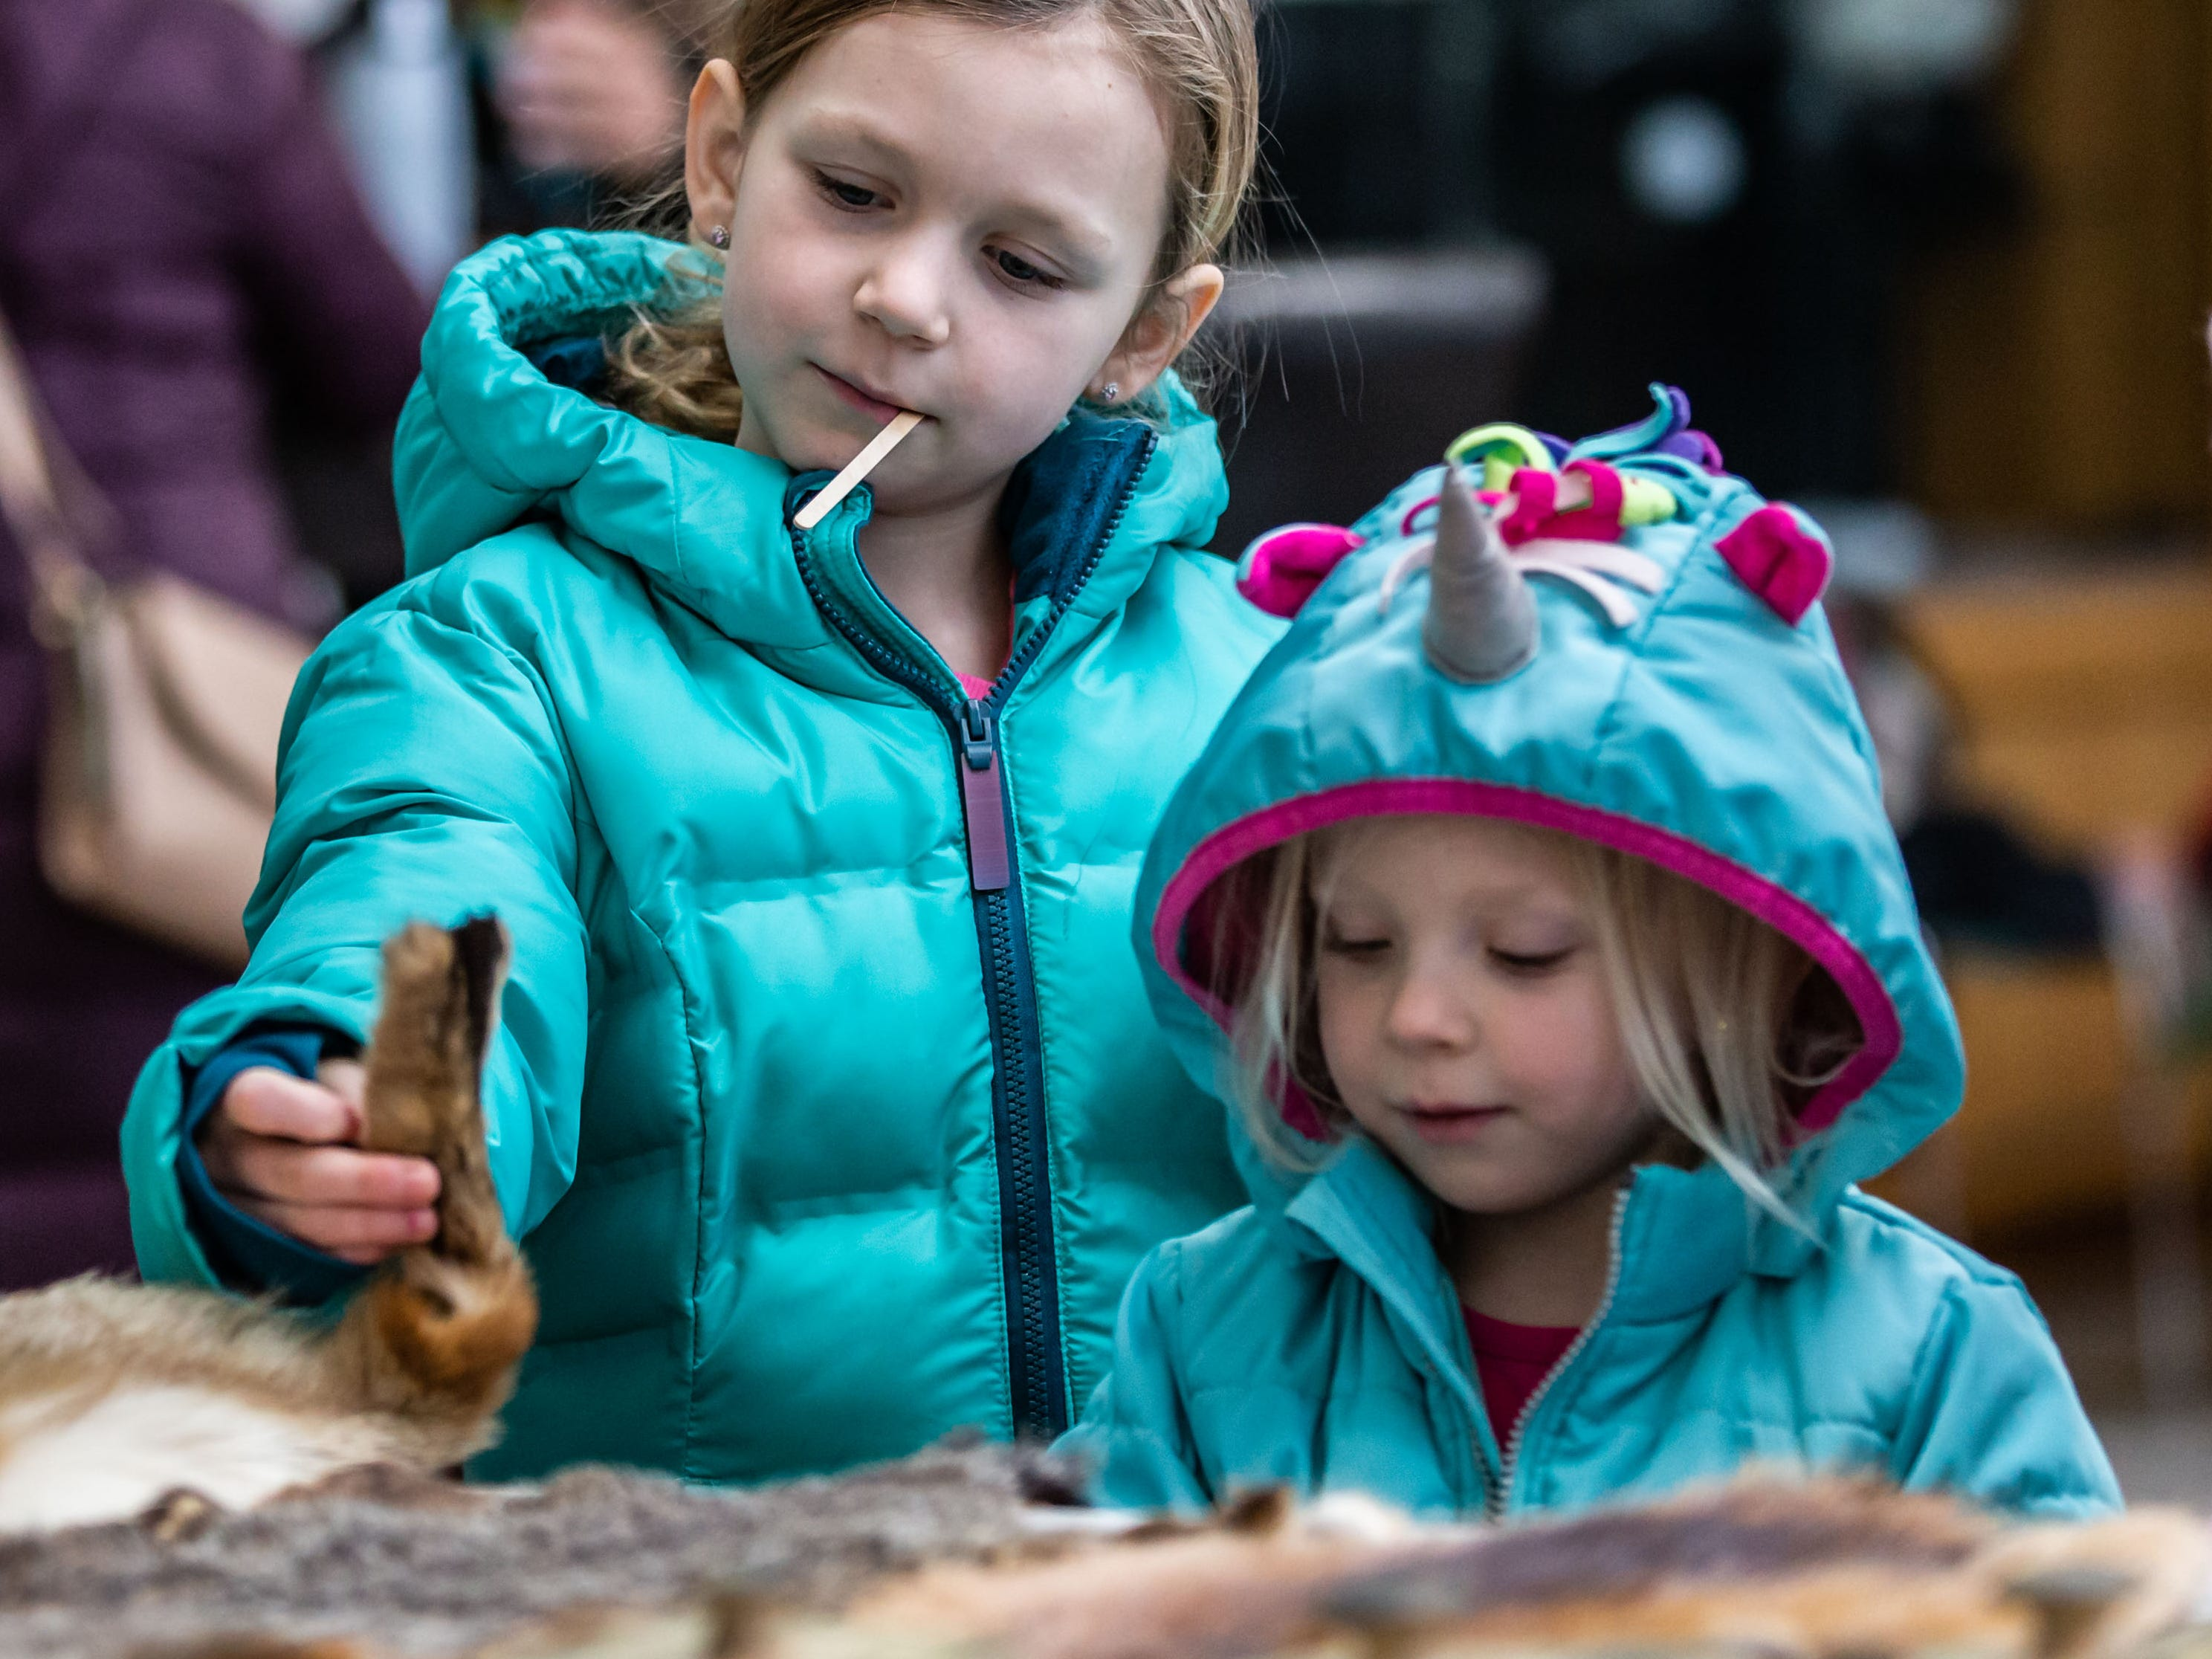 Amelia Kenny, 6, and her sister Grace, 3, of Muskego, learn about native animal pelts during Winterfest at Boerner Botanical Gardens in Hales Corners on Sunday, Jan. 20, 2019. The annual event, hosted by the Friends of Boerner Botanical Gardens, features children's crafts, informational displays, expert-led nature walks and more.